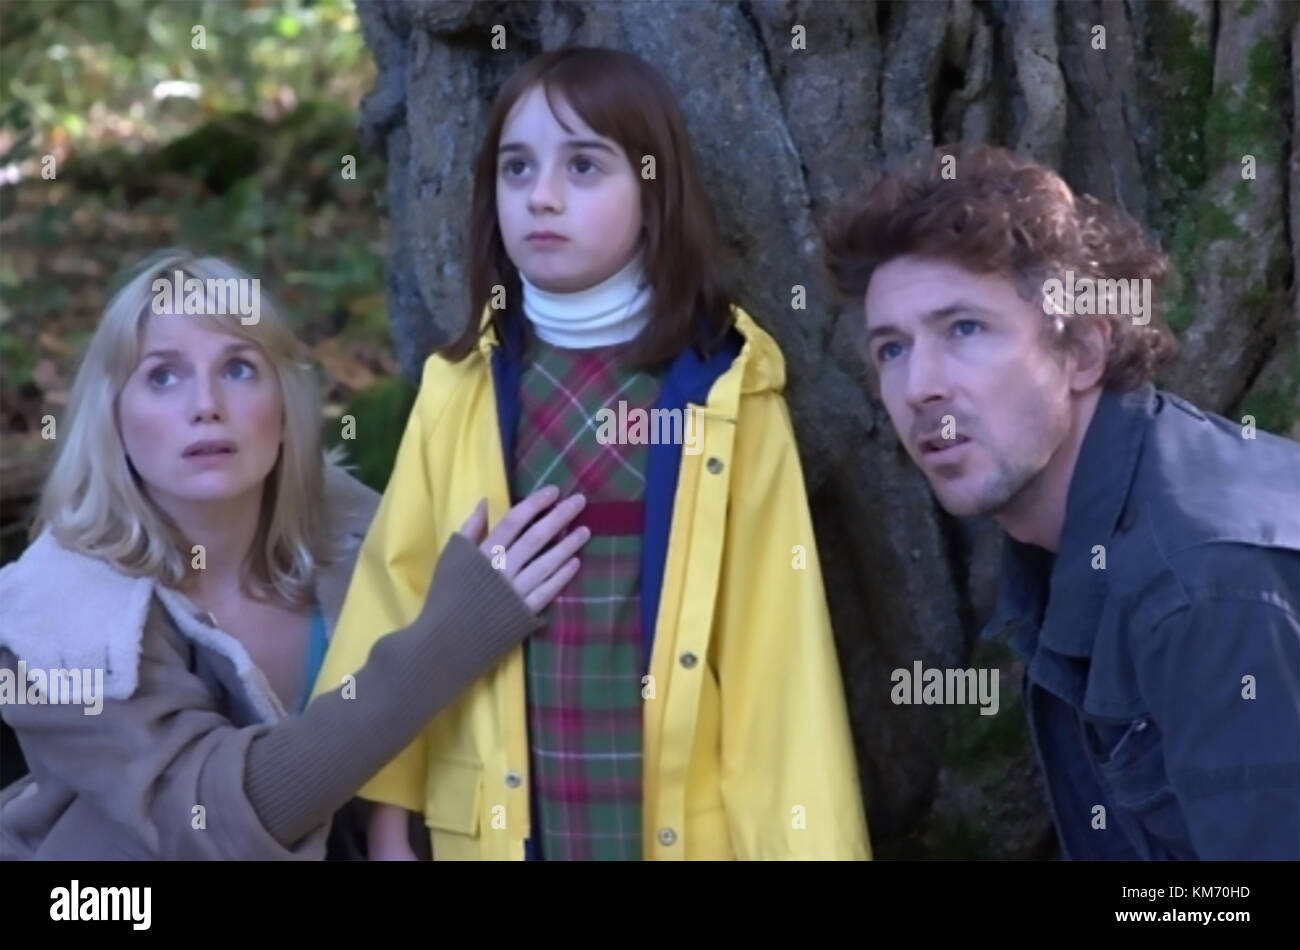 WAKE WOOD 2009 Hammer Films production with from left: Eva Birthistle, Ella Connolly, Aidan Gillen - Stock Image